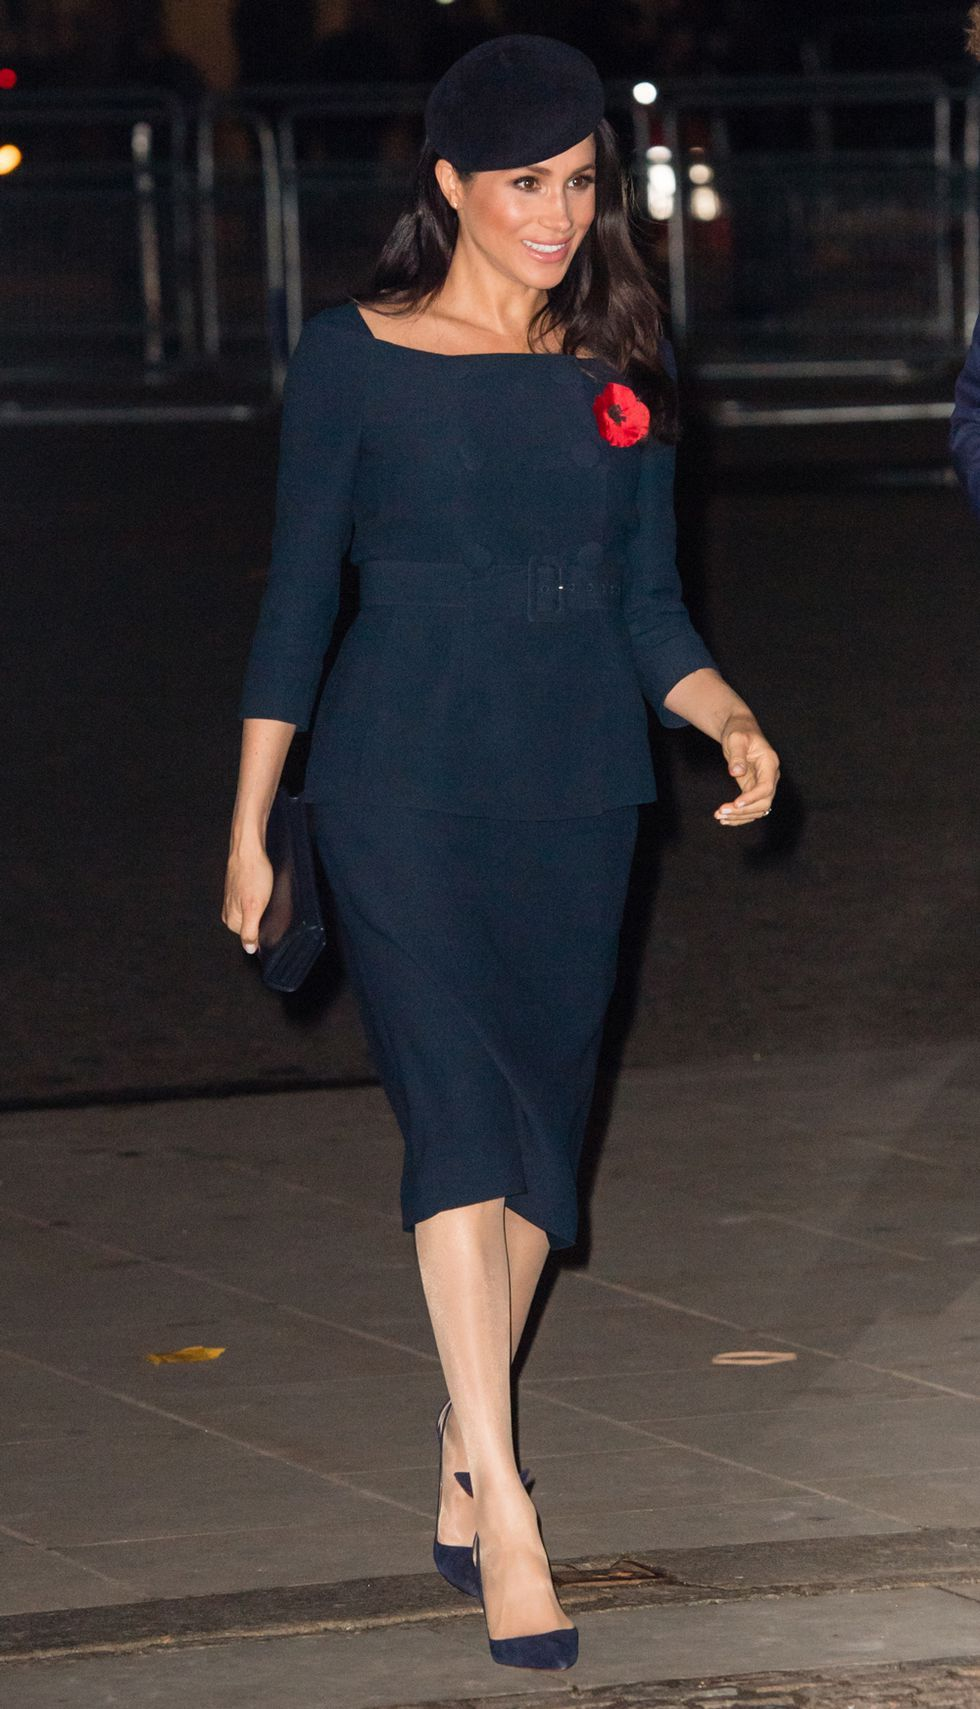 e84598eb1 Meghan Markle's best style moments - what Meghan Markle is wearing